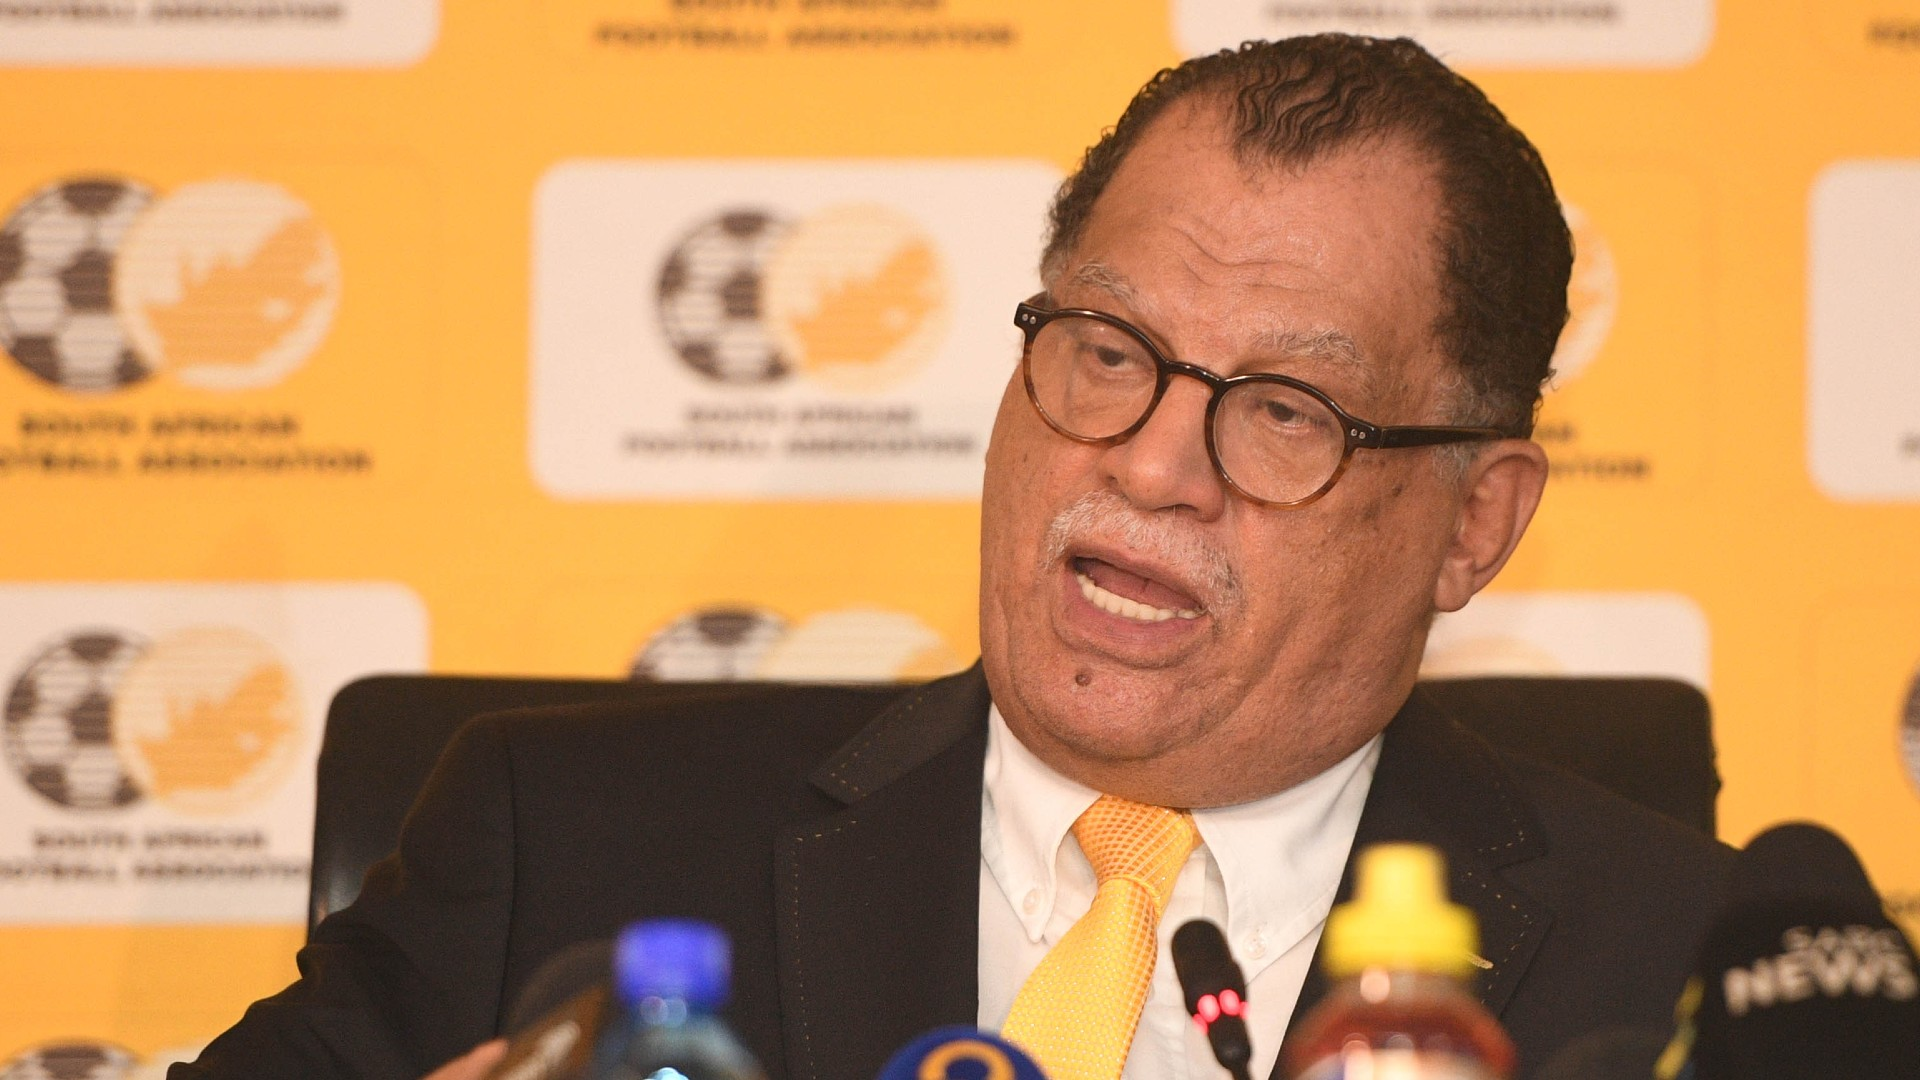 'Mosimane is one of our own' – Al Ahly vs Kaizer Chiefs a South African affair - Jordaan